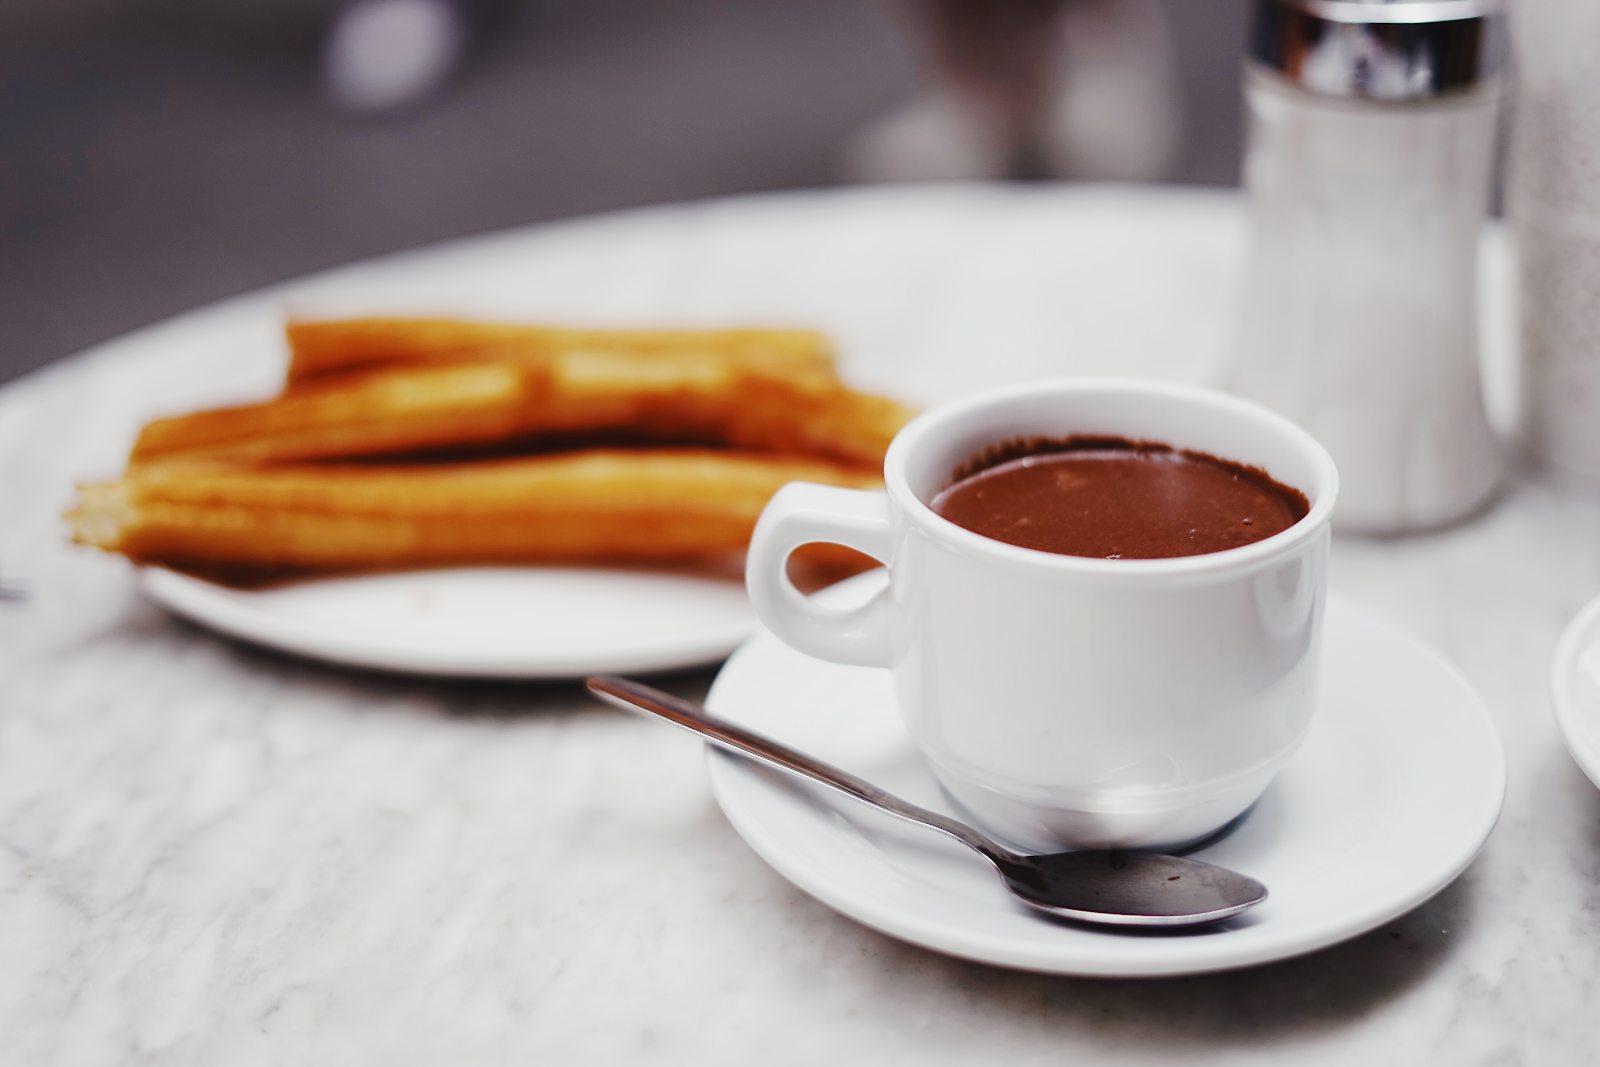 Out of focus churros with hot chocolate for dipping in the foreground